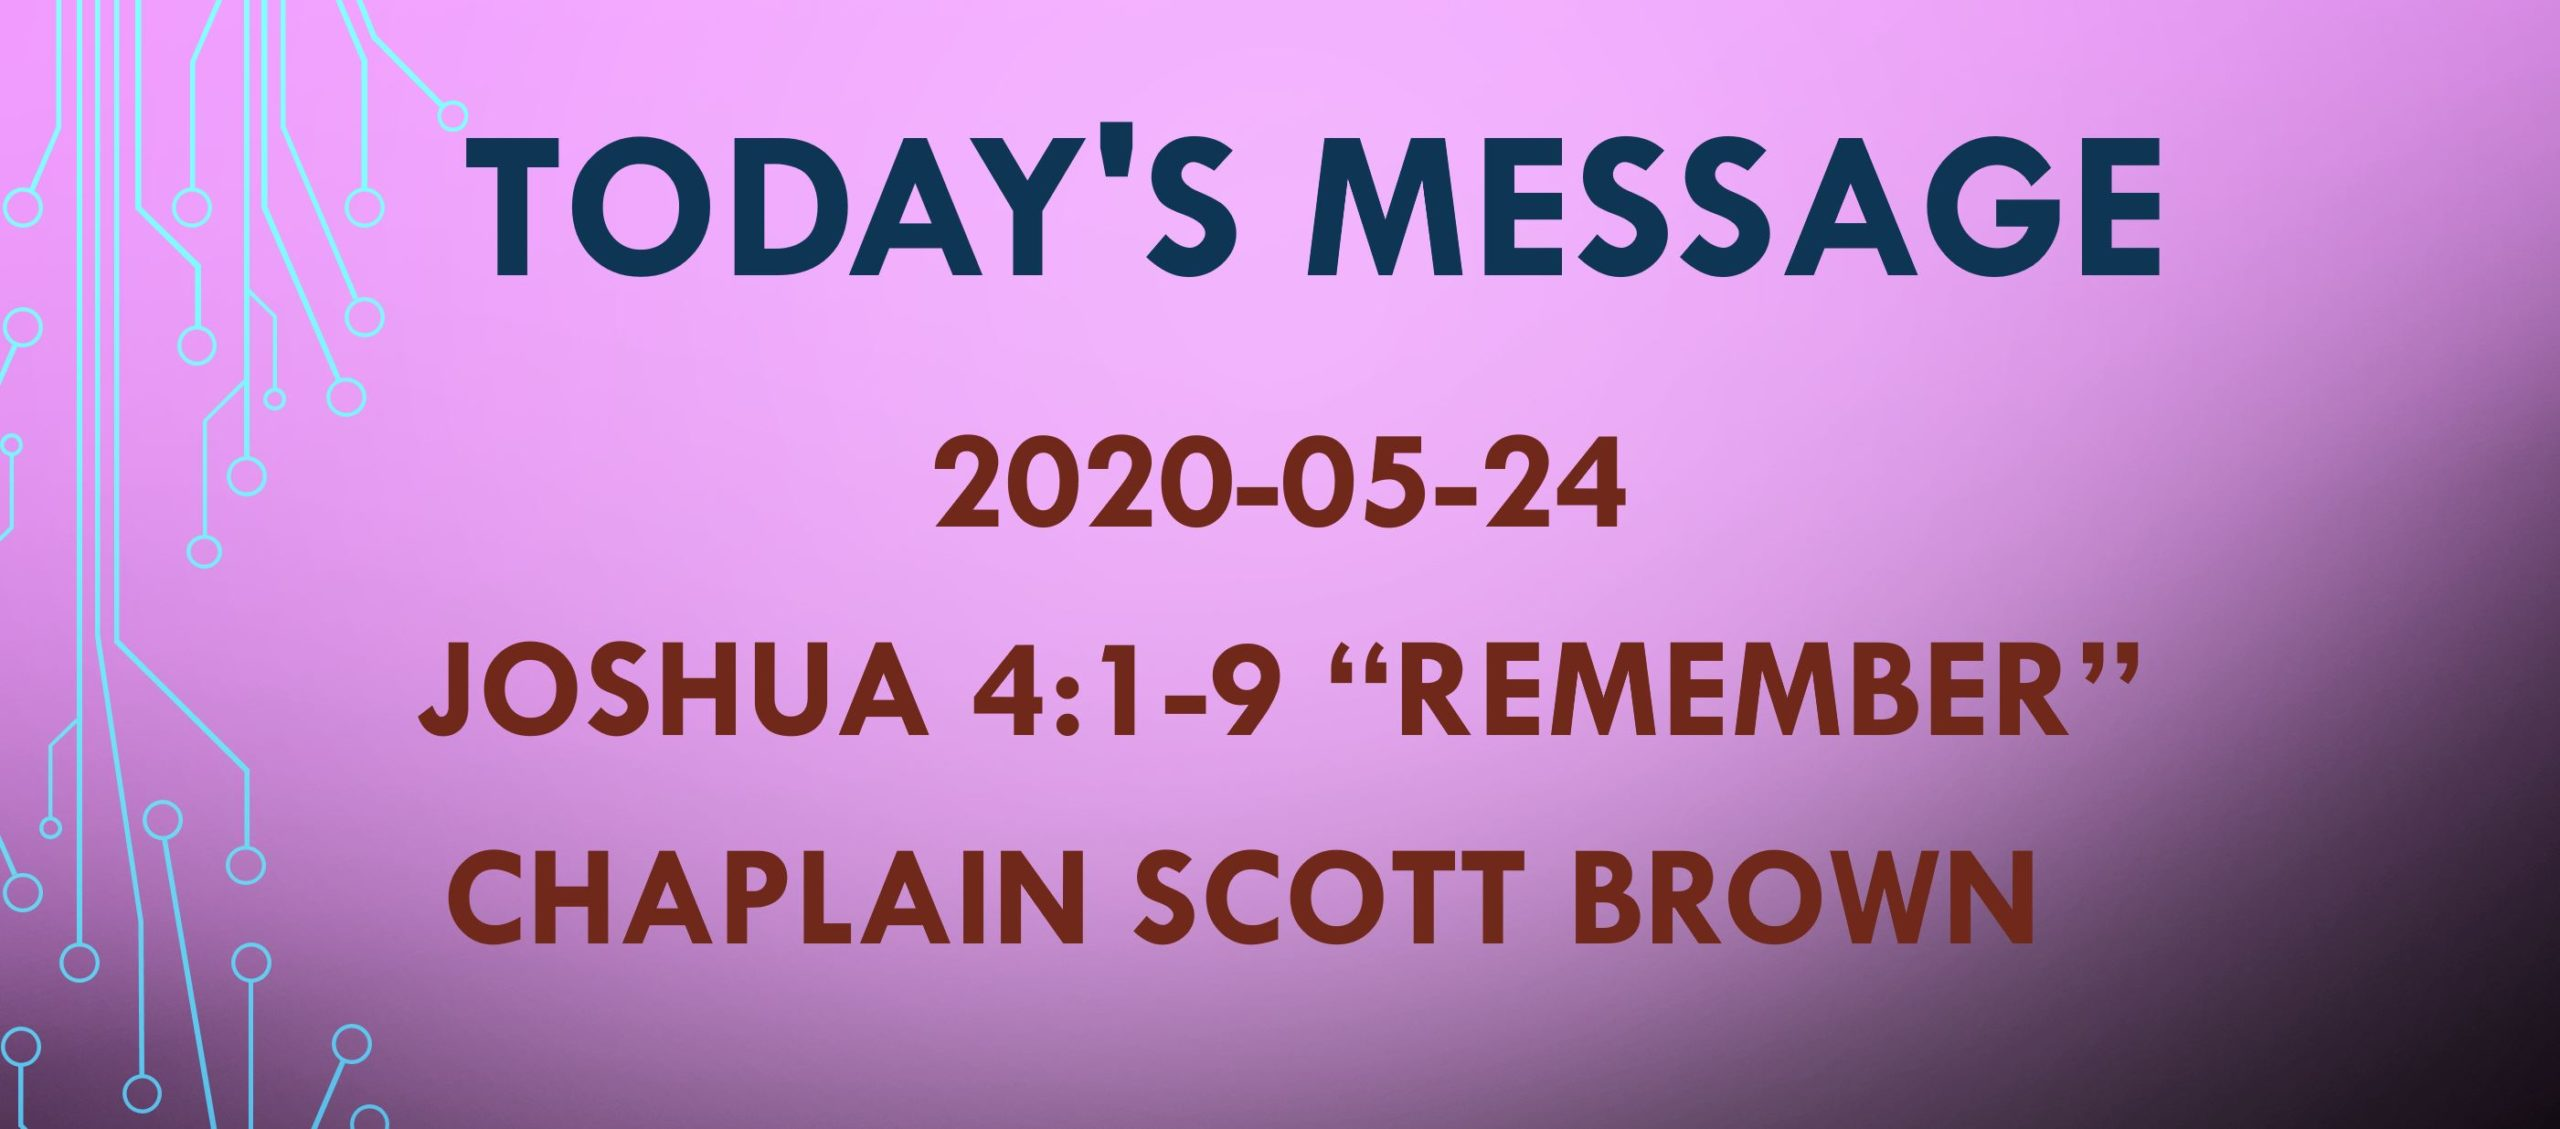 "2020-05-25 Joshua 4:1-9 ""Remember"""